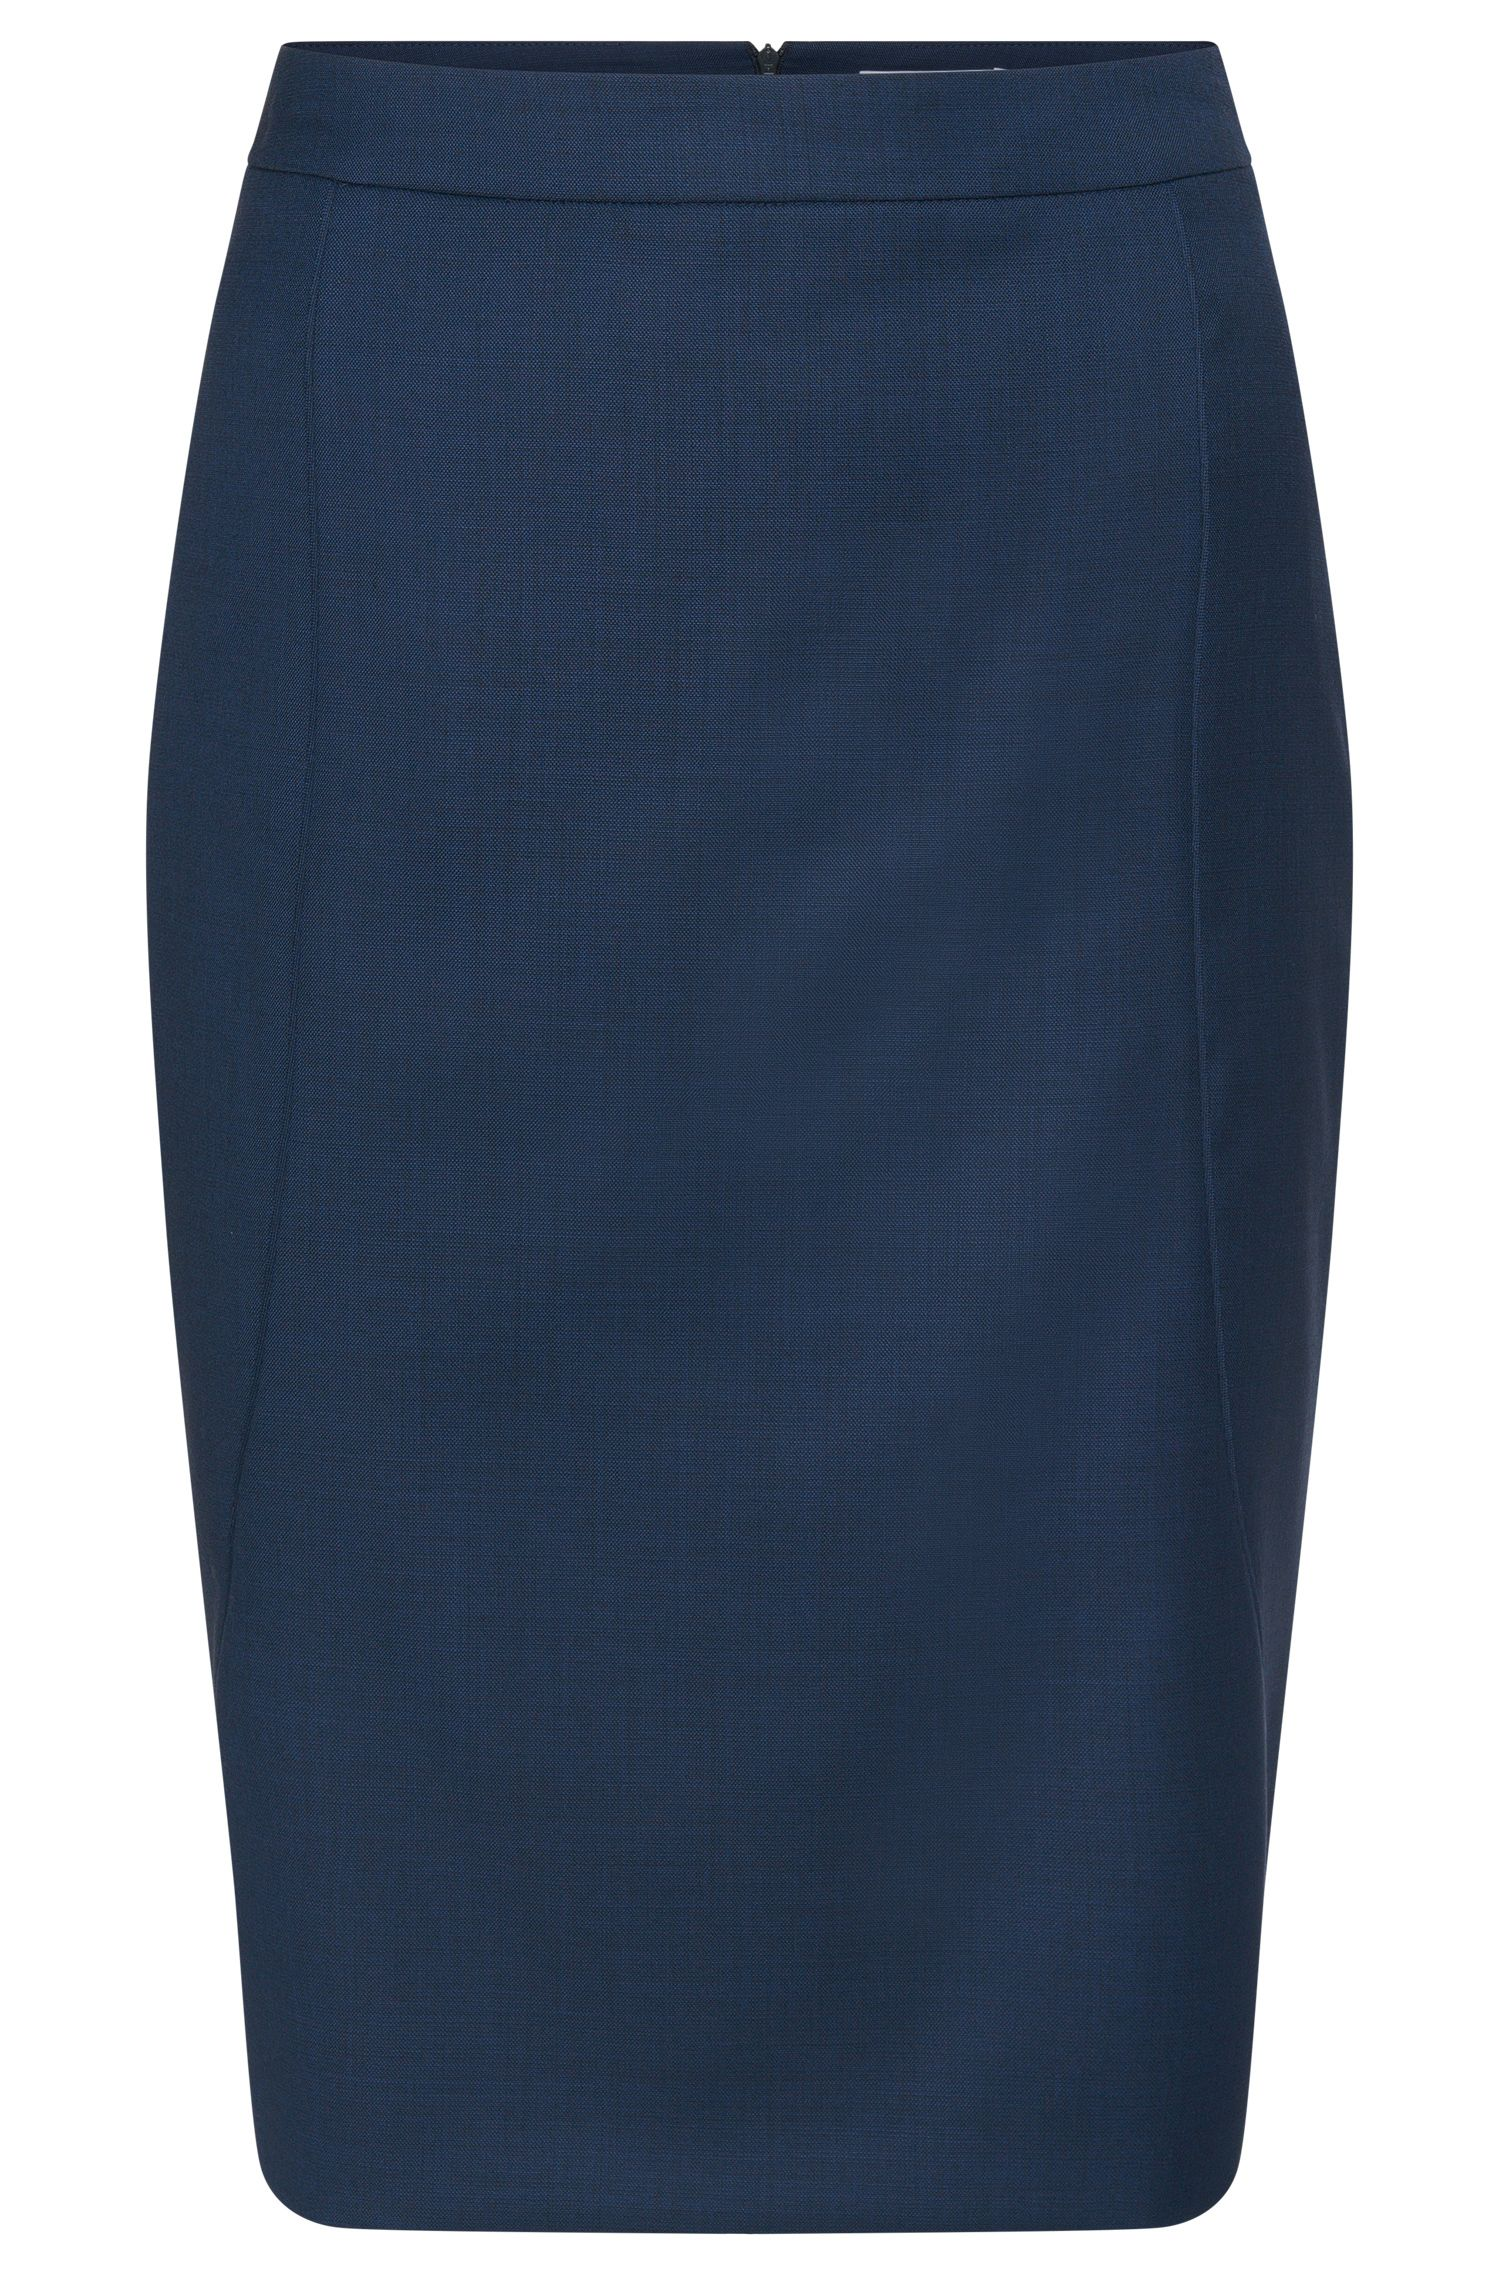 Pencil skirt in stretchy wool blend with visible seams: 'Venesa'